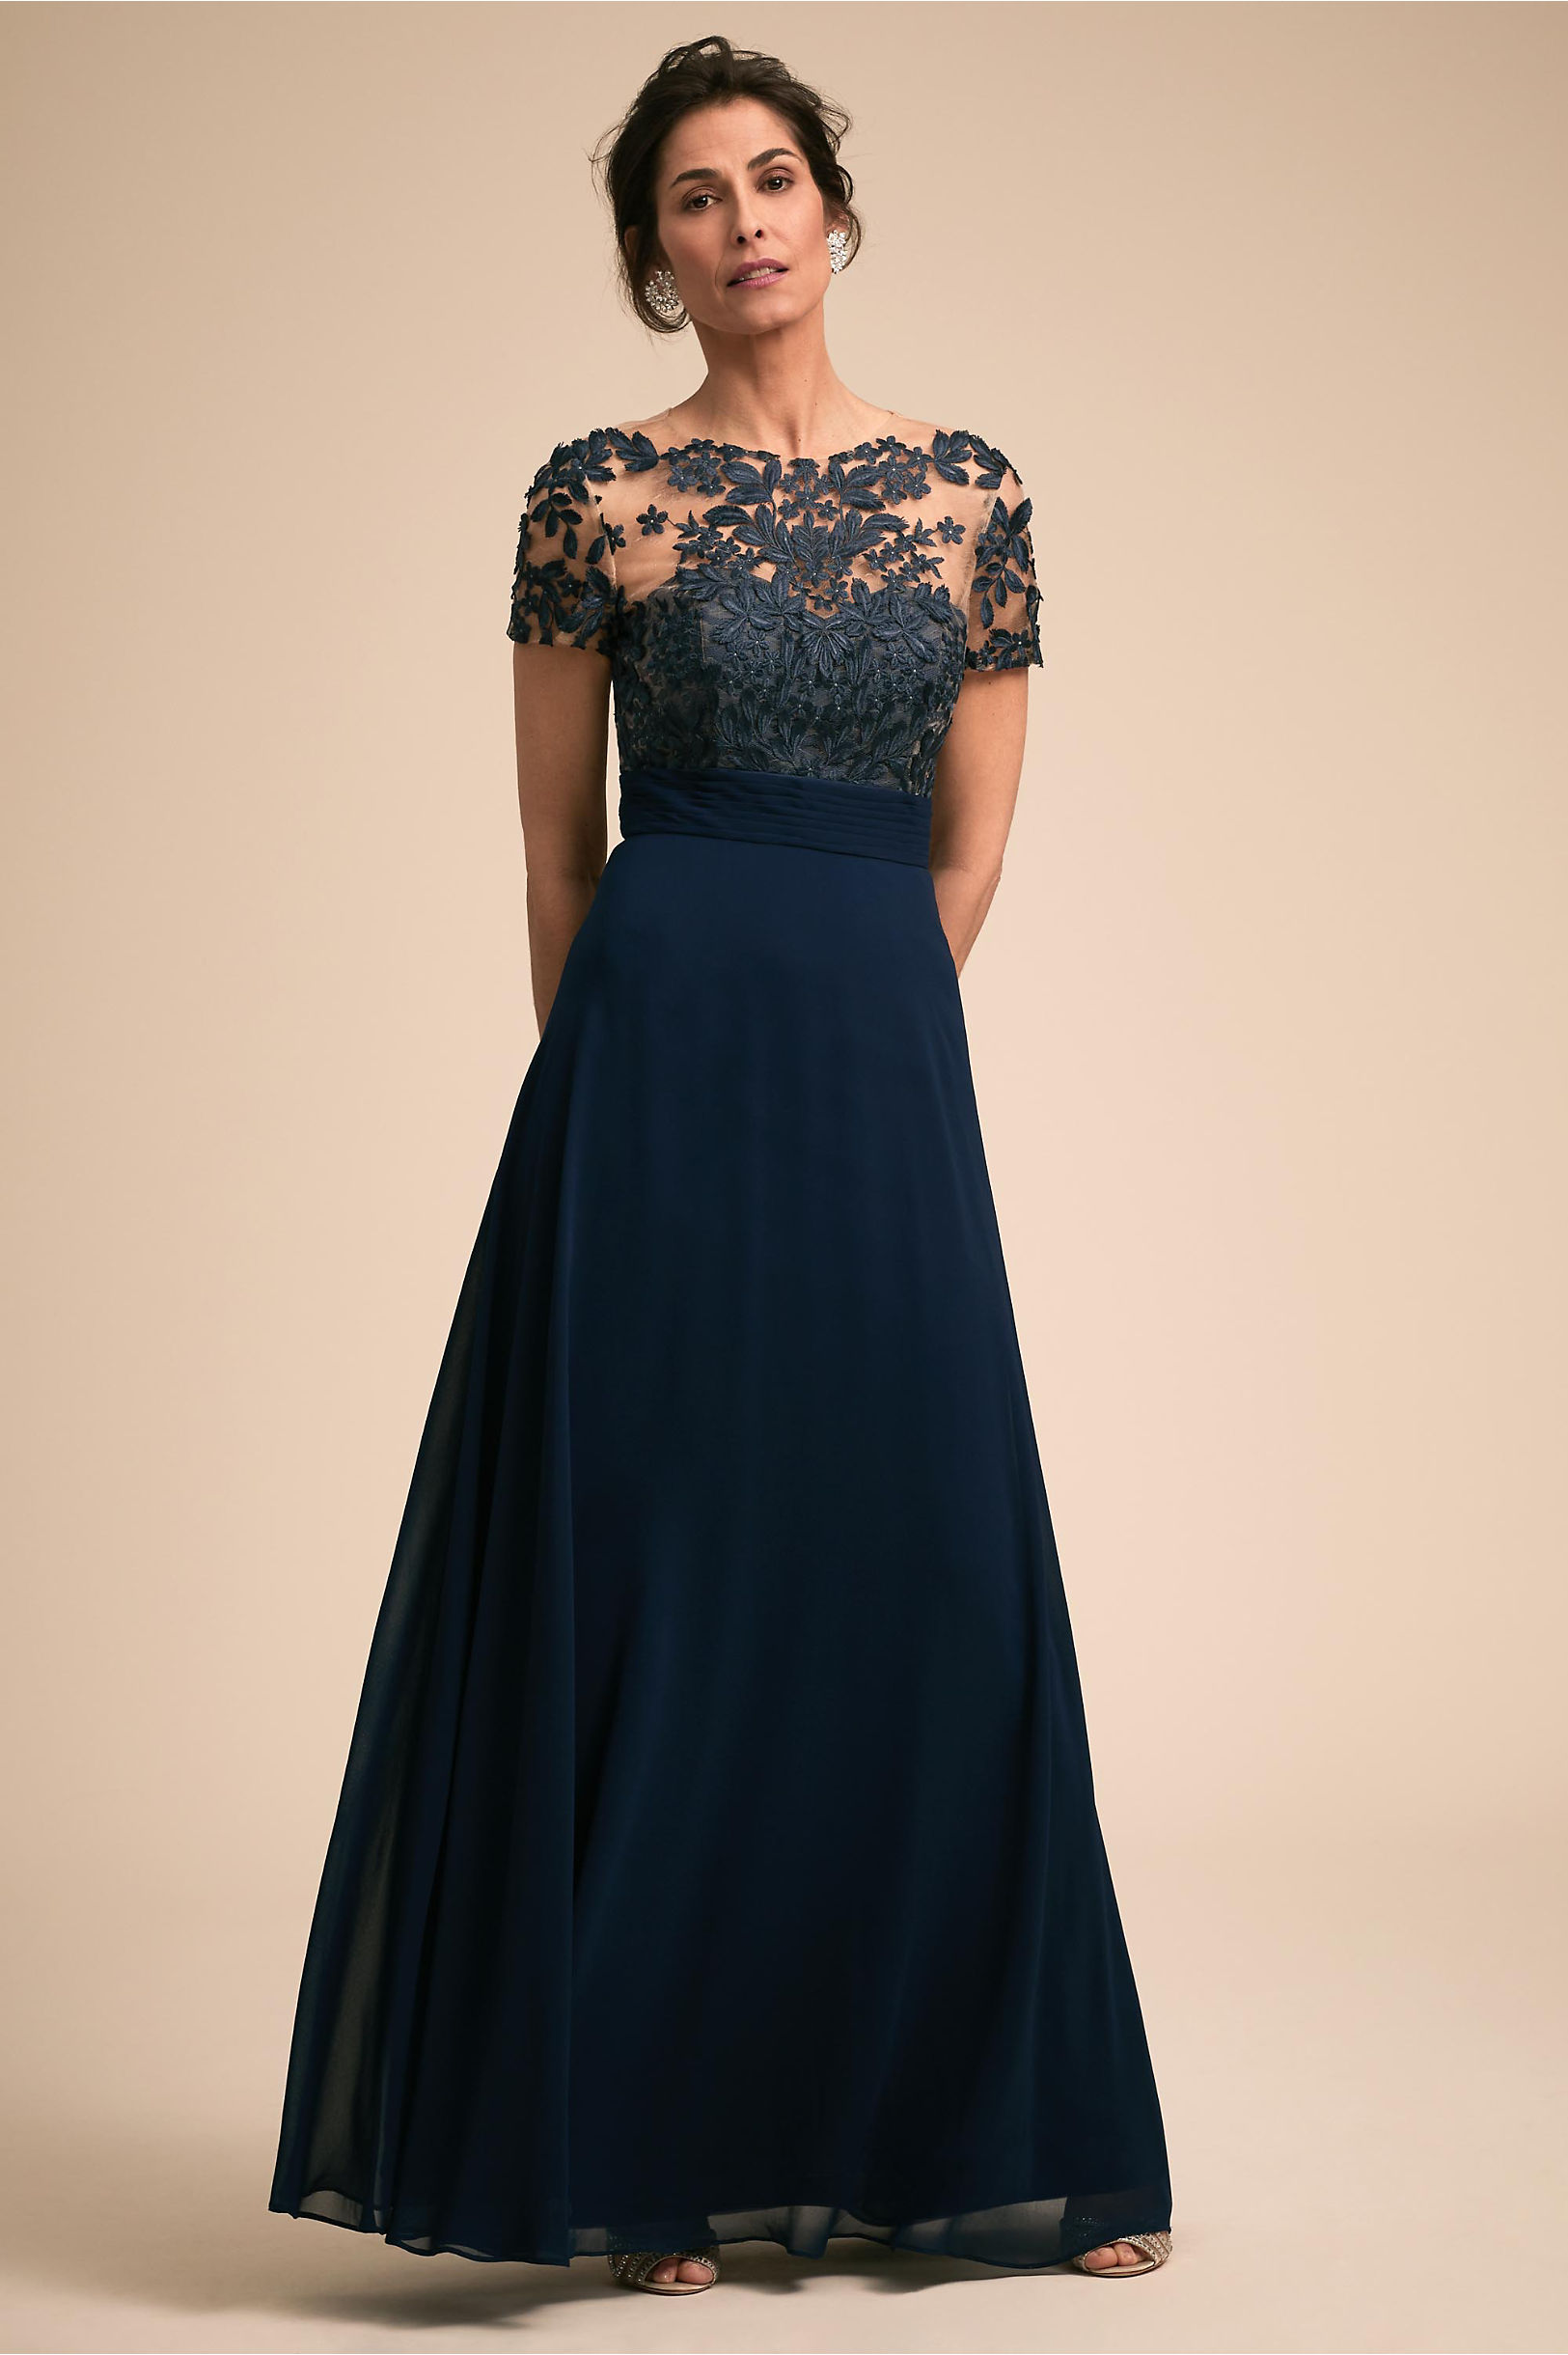 Guthrie Dress Navy in Occasion Dresses | BHLDN